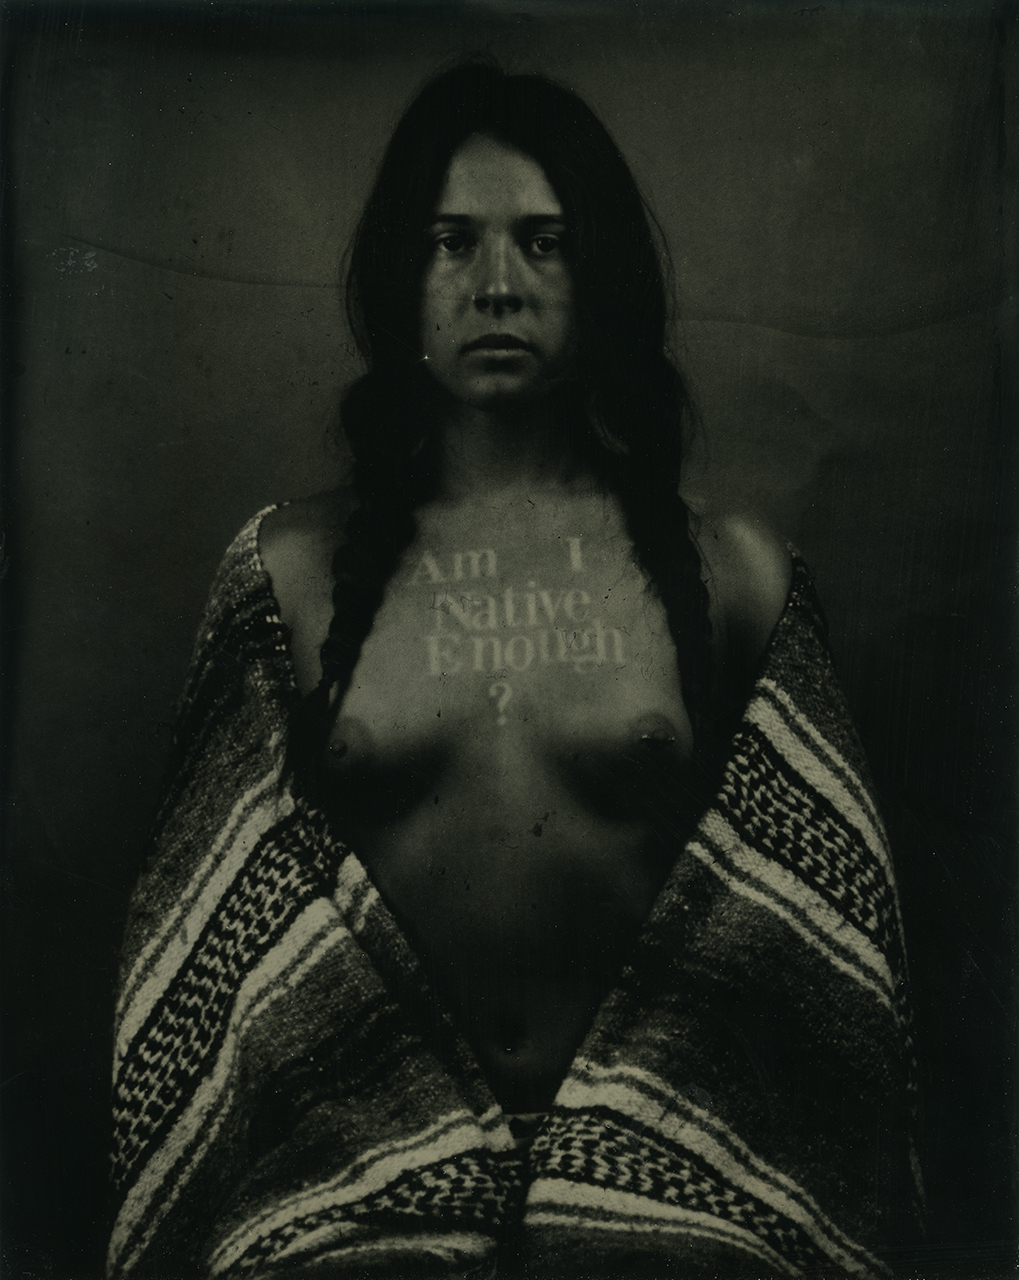 Moffett_Raven_Am_I_Native_Enough_Sample_Tintype.jpg